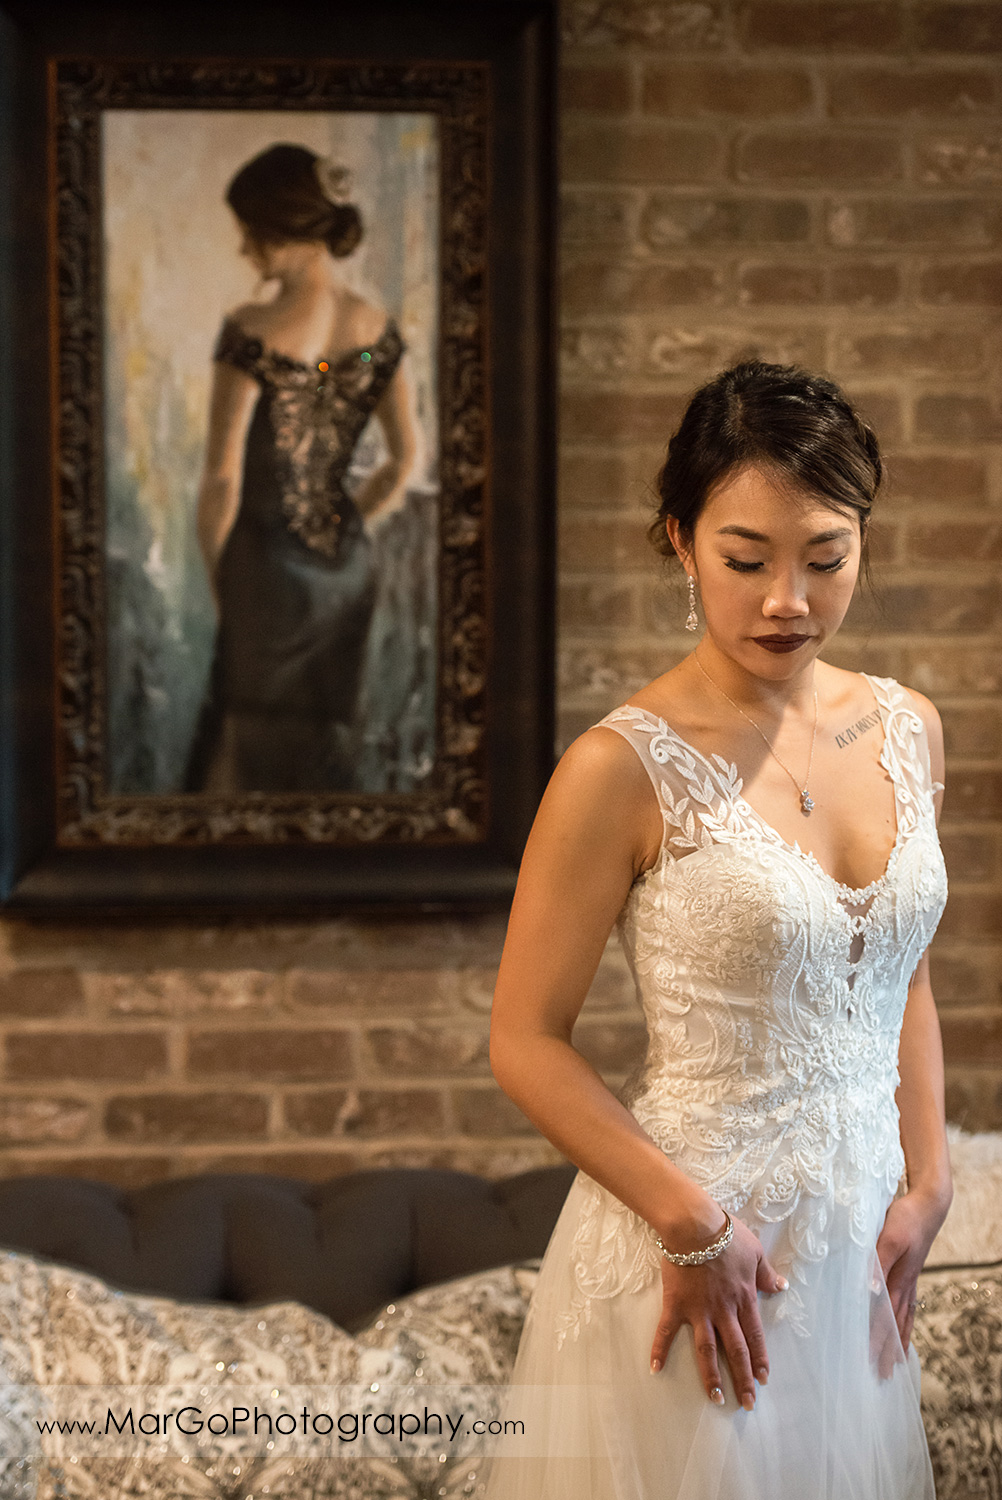 portrait of the bride with painting in background at Sunol's Casa Bella bridal suite